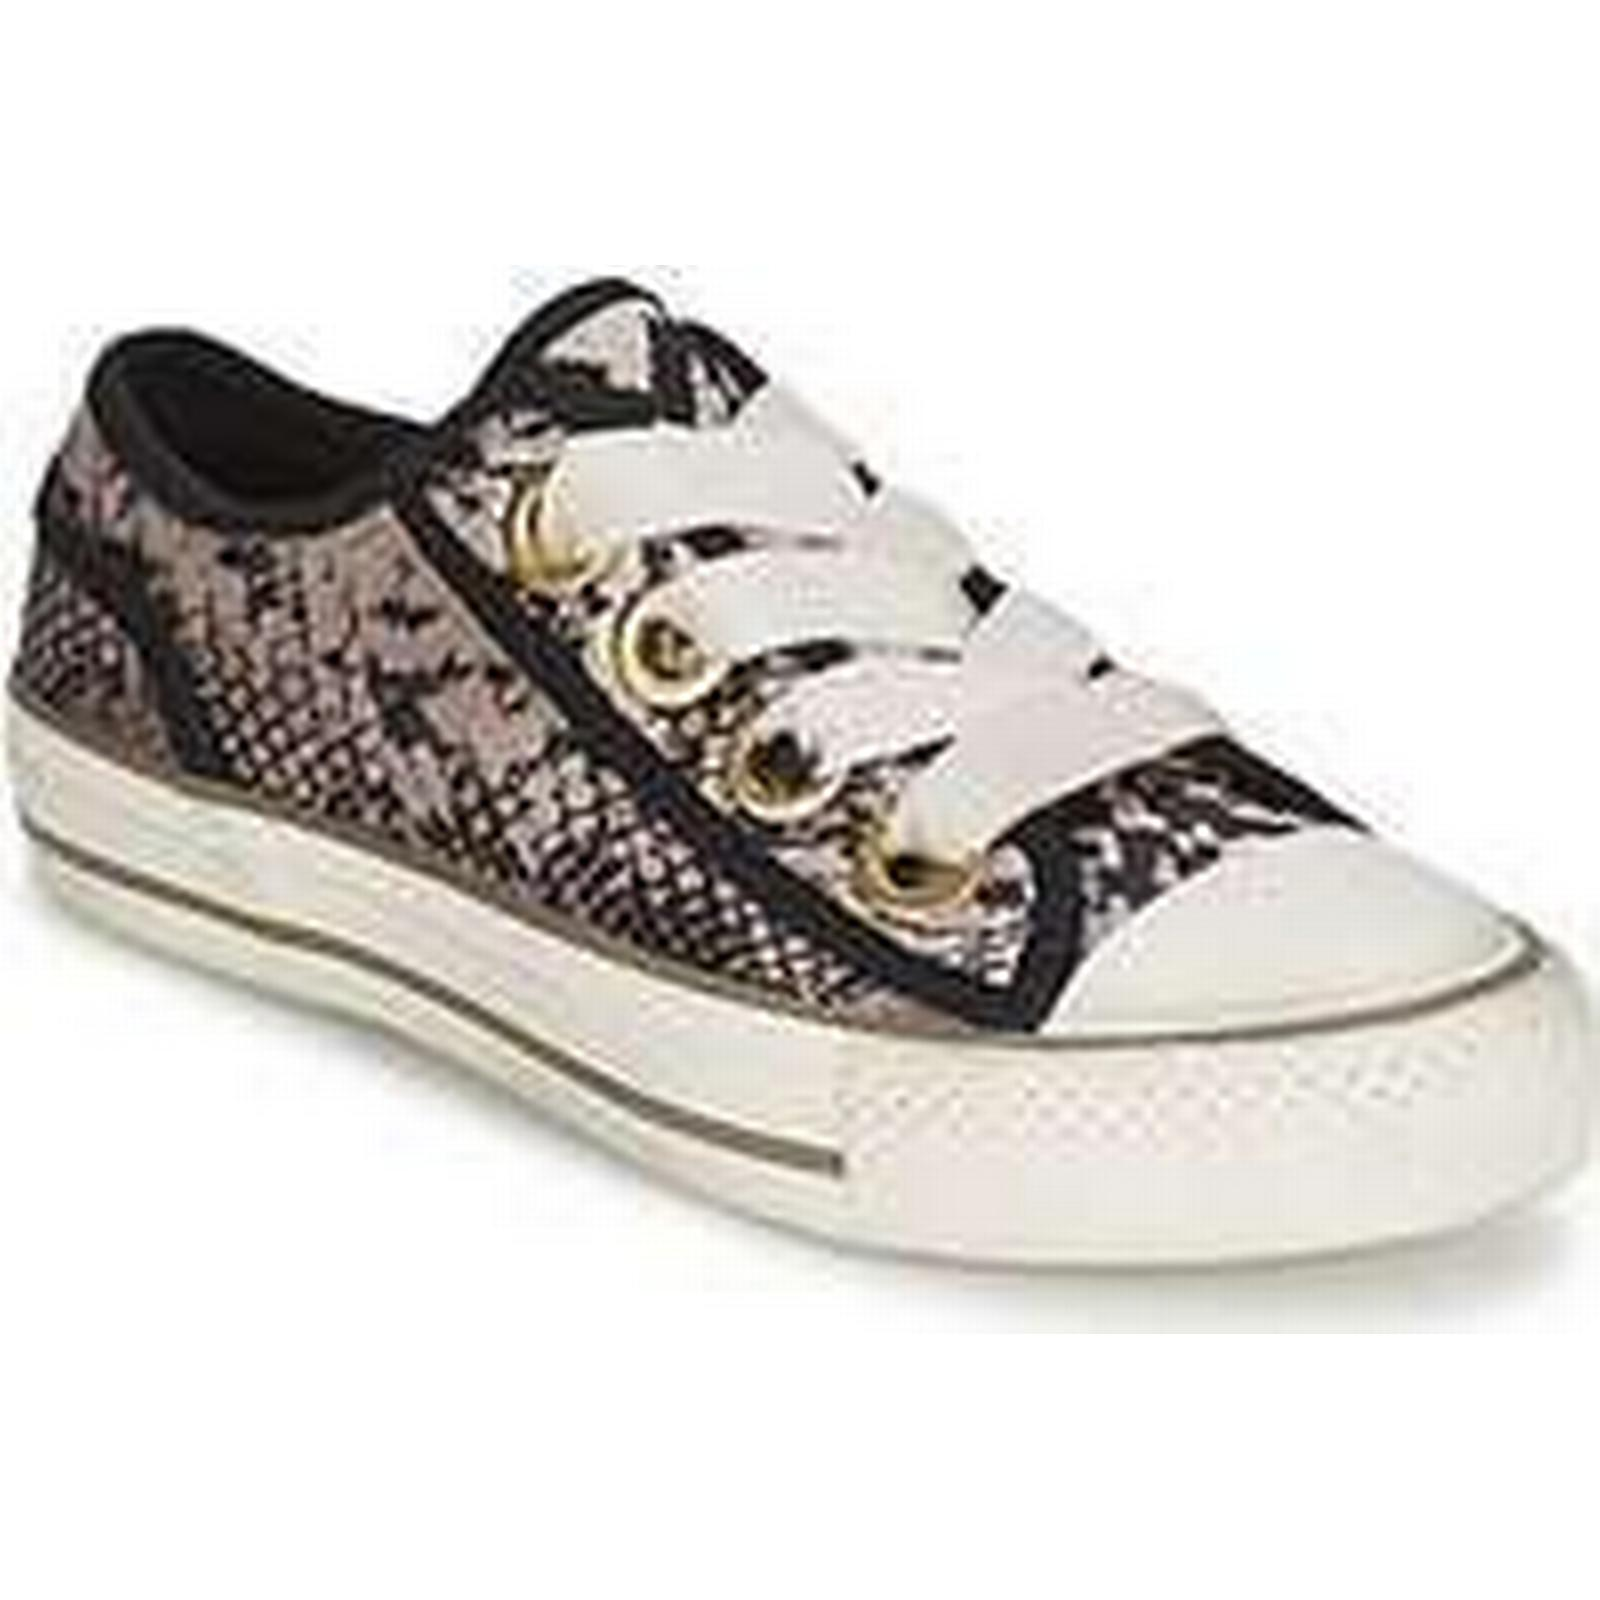 Spartoo.co.uk Ash in VICKY women's Shoes (Trainers) in Ash Multicolour bf7b47